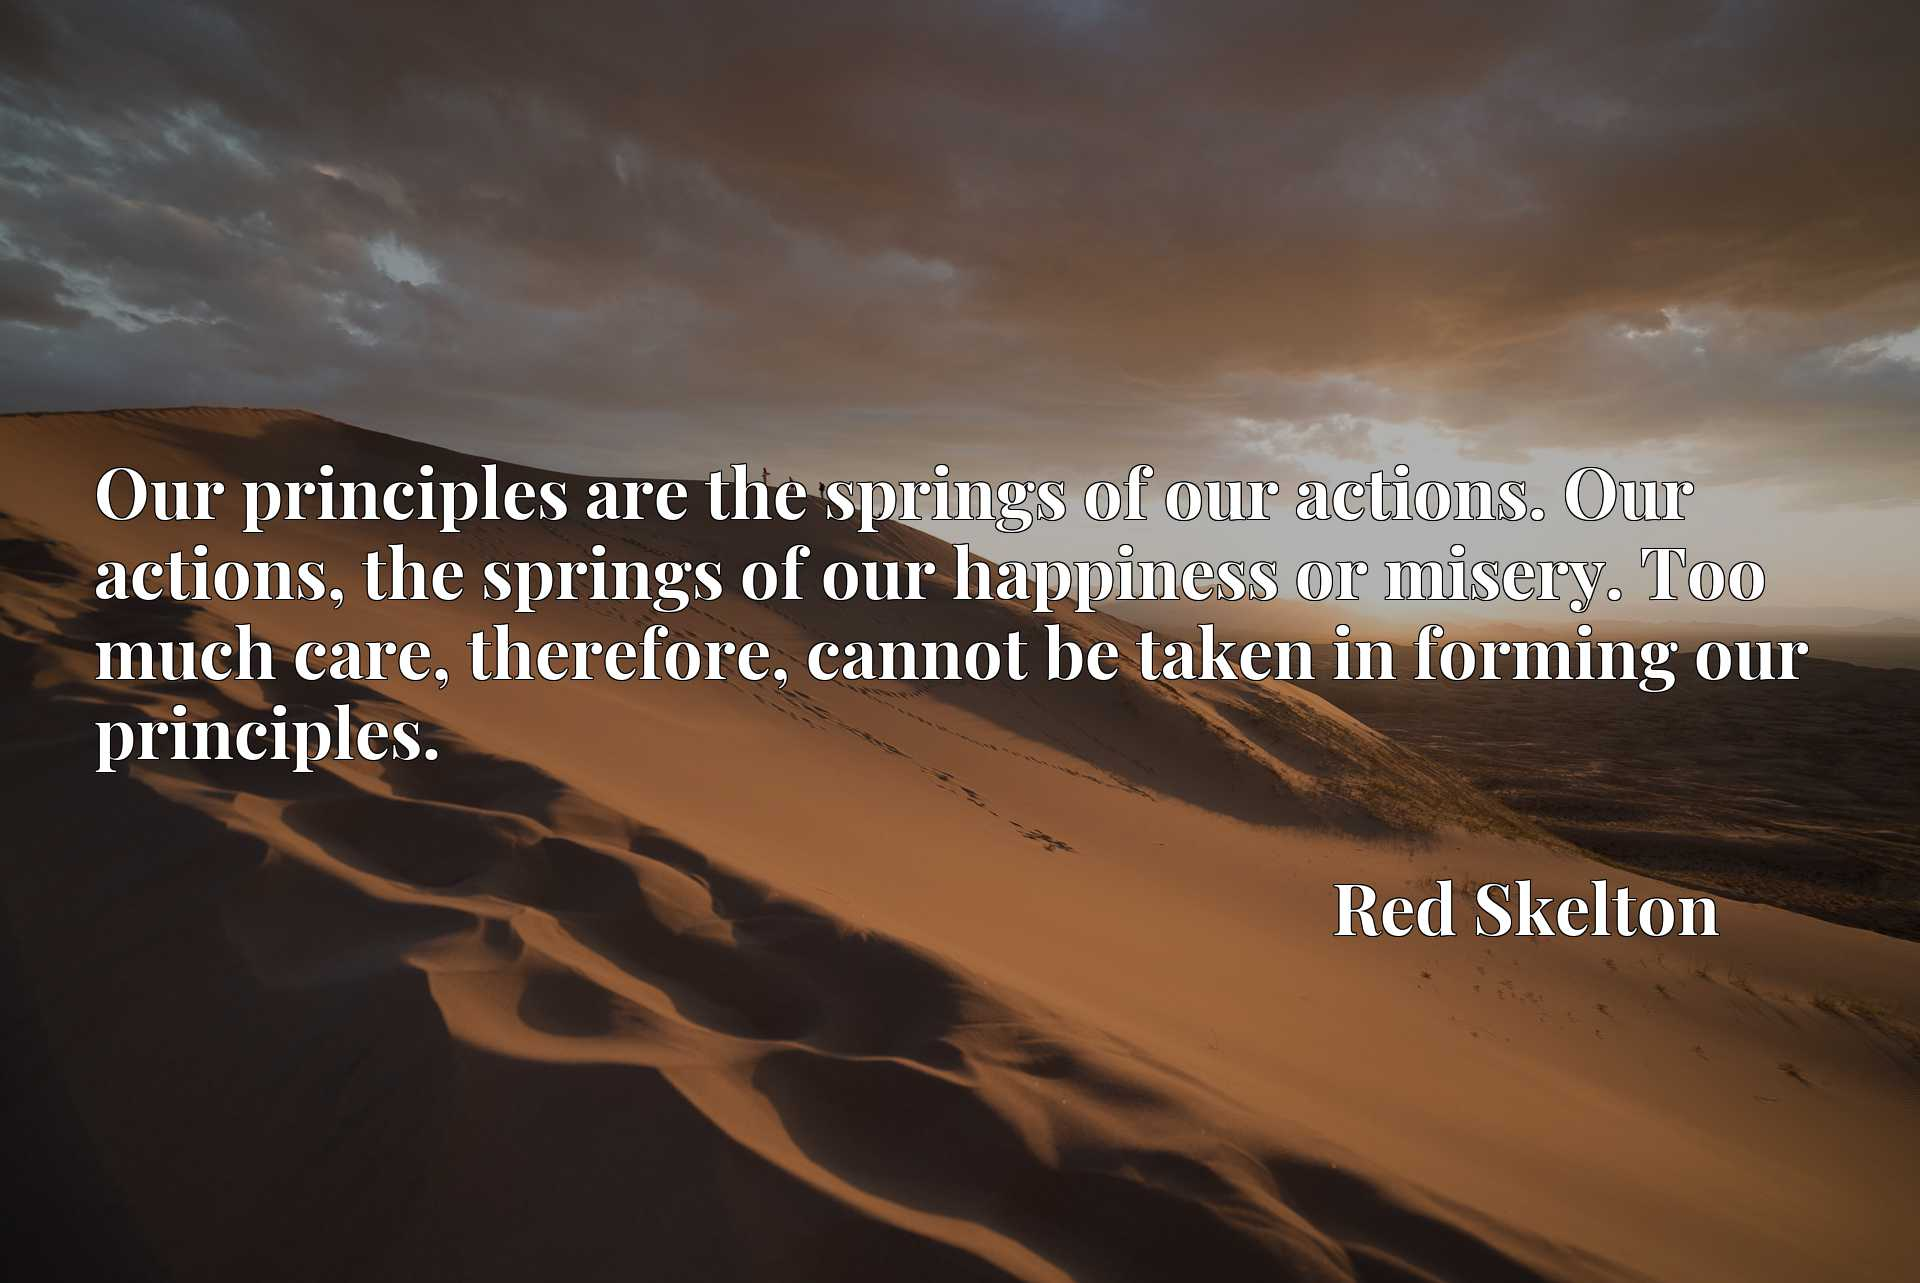 Our principles are the springs of our actions. Our actions, the springs of our happiness or misery. Too much care, therefore, cannot be taken in forming our principles.